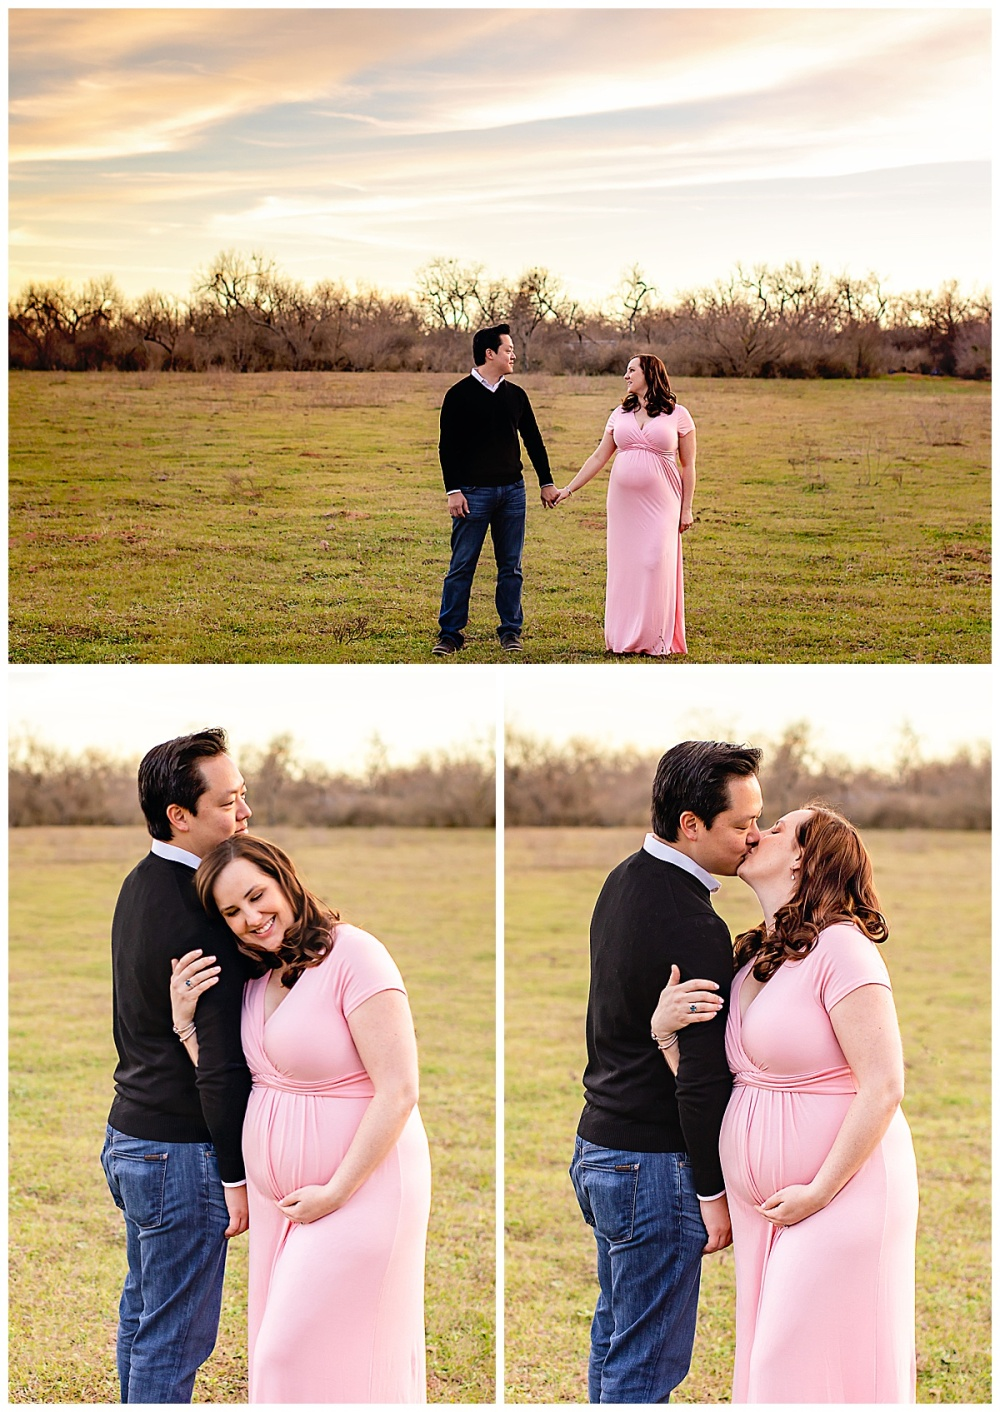 Maternity-Photographer-Texas-Carly-Barton-Photography-LaVernia-Photos_0010.jpg